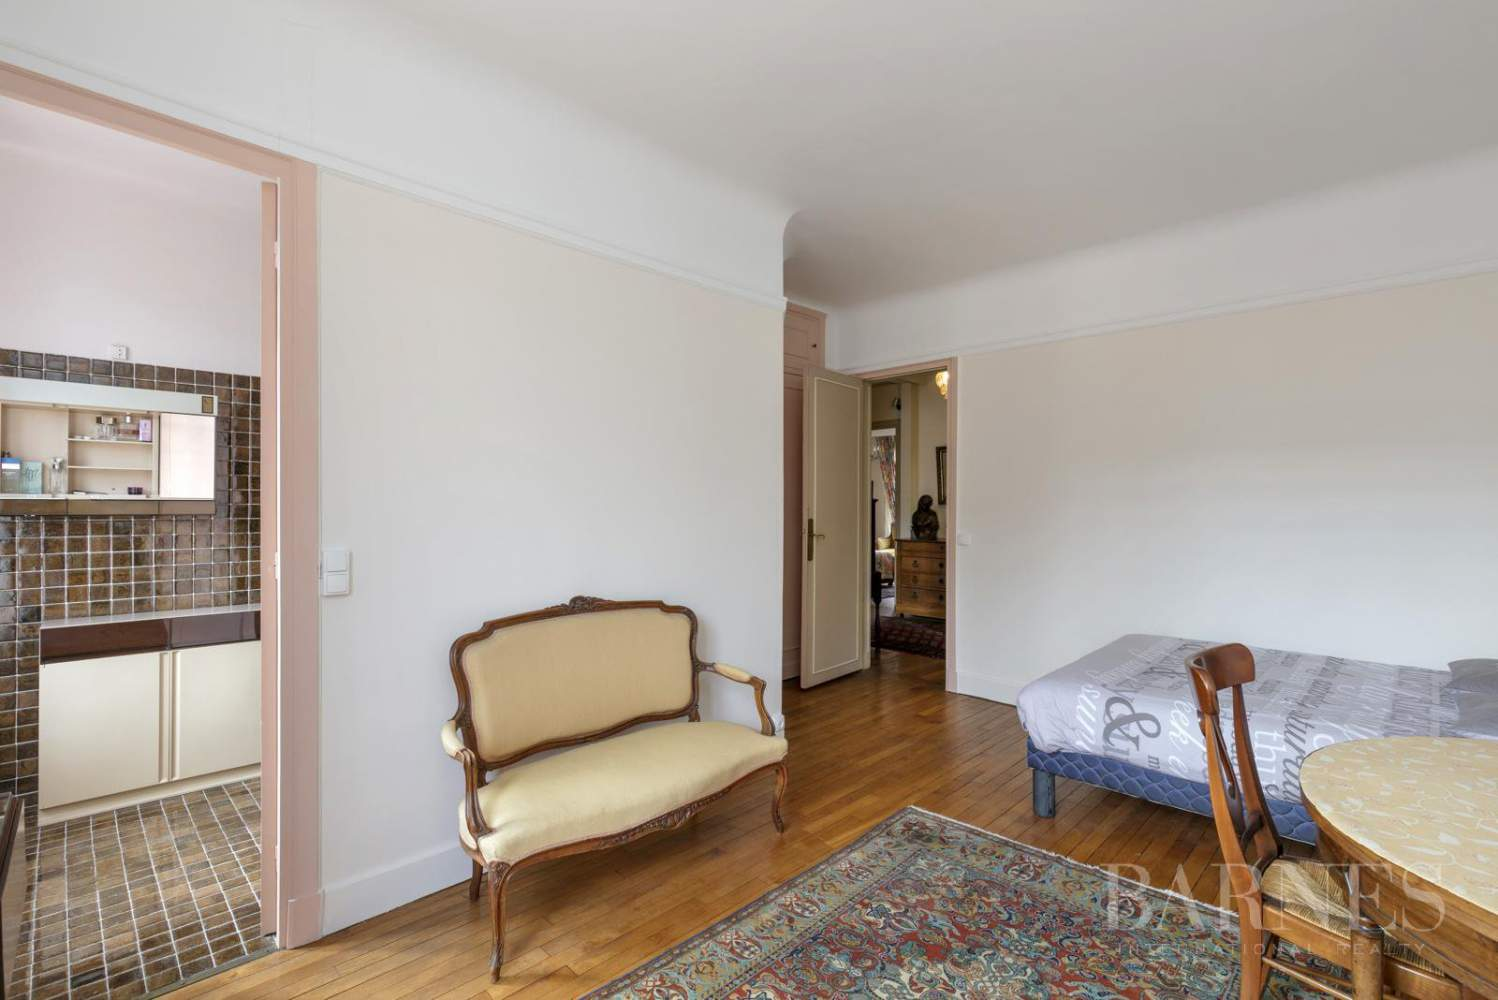 BOURGEOIS HOUSE WITH GARDEN - PRIVATE ROAD - NEUILLY/SAINT-JAMES picture 16